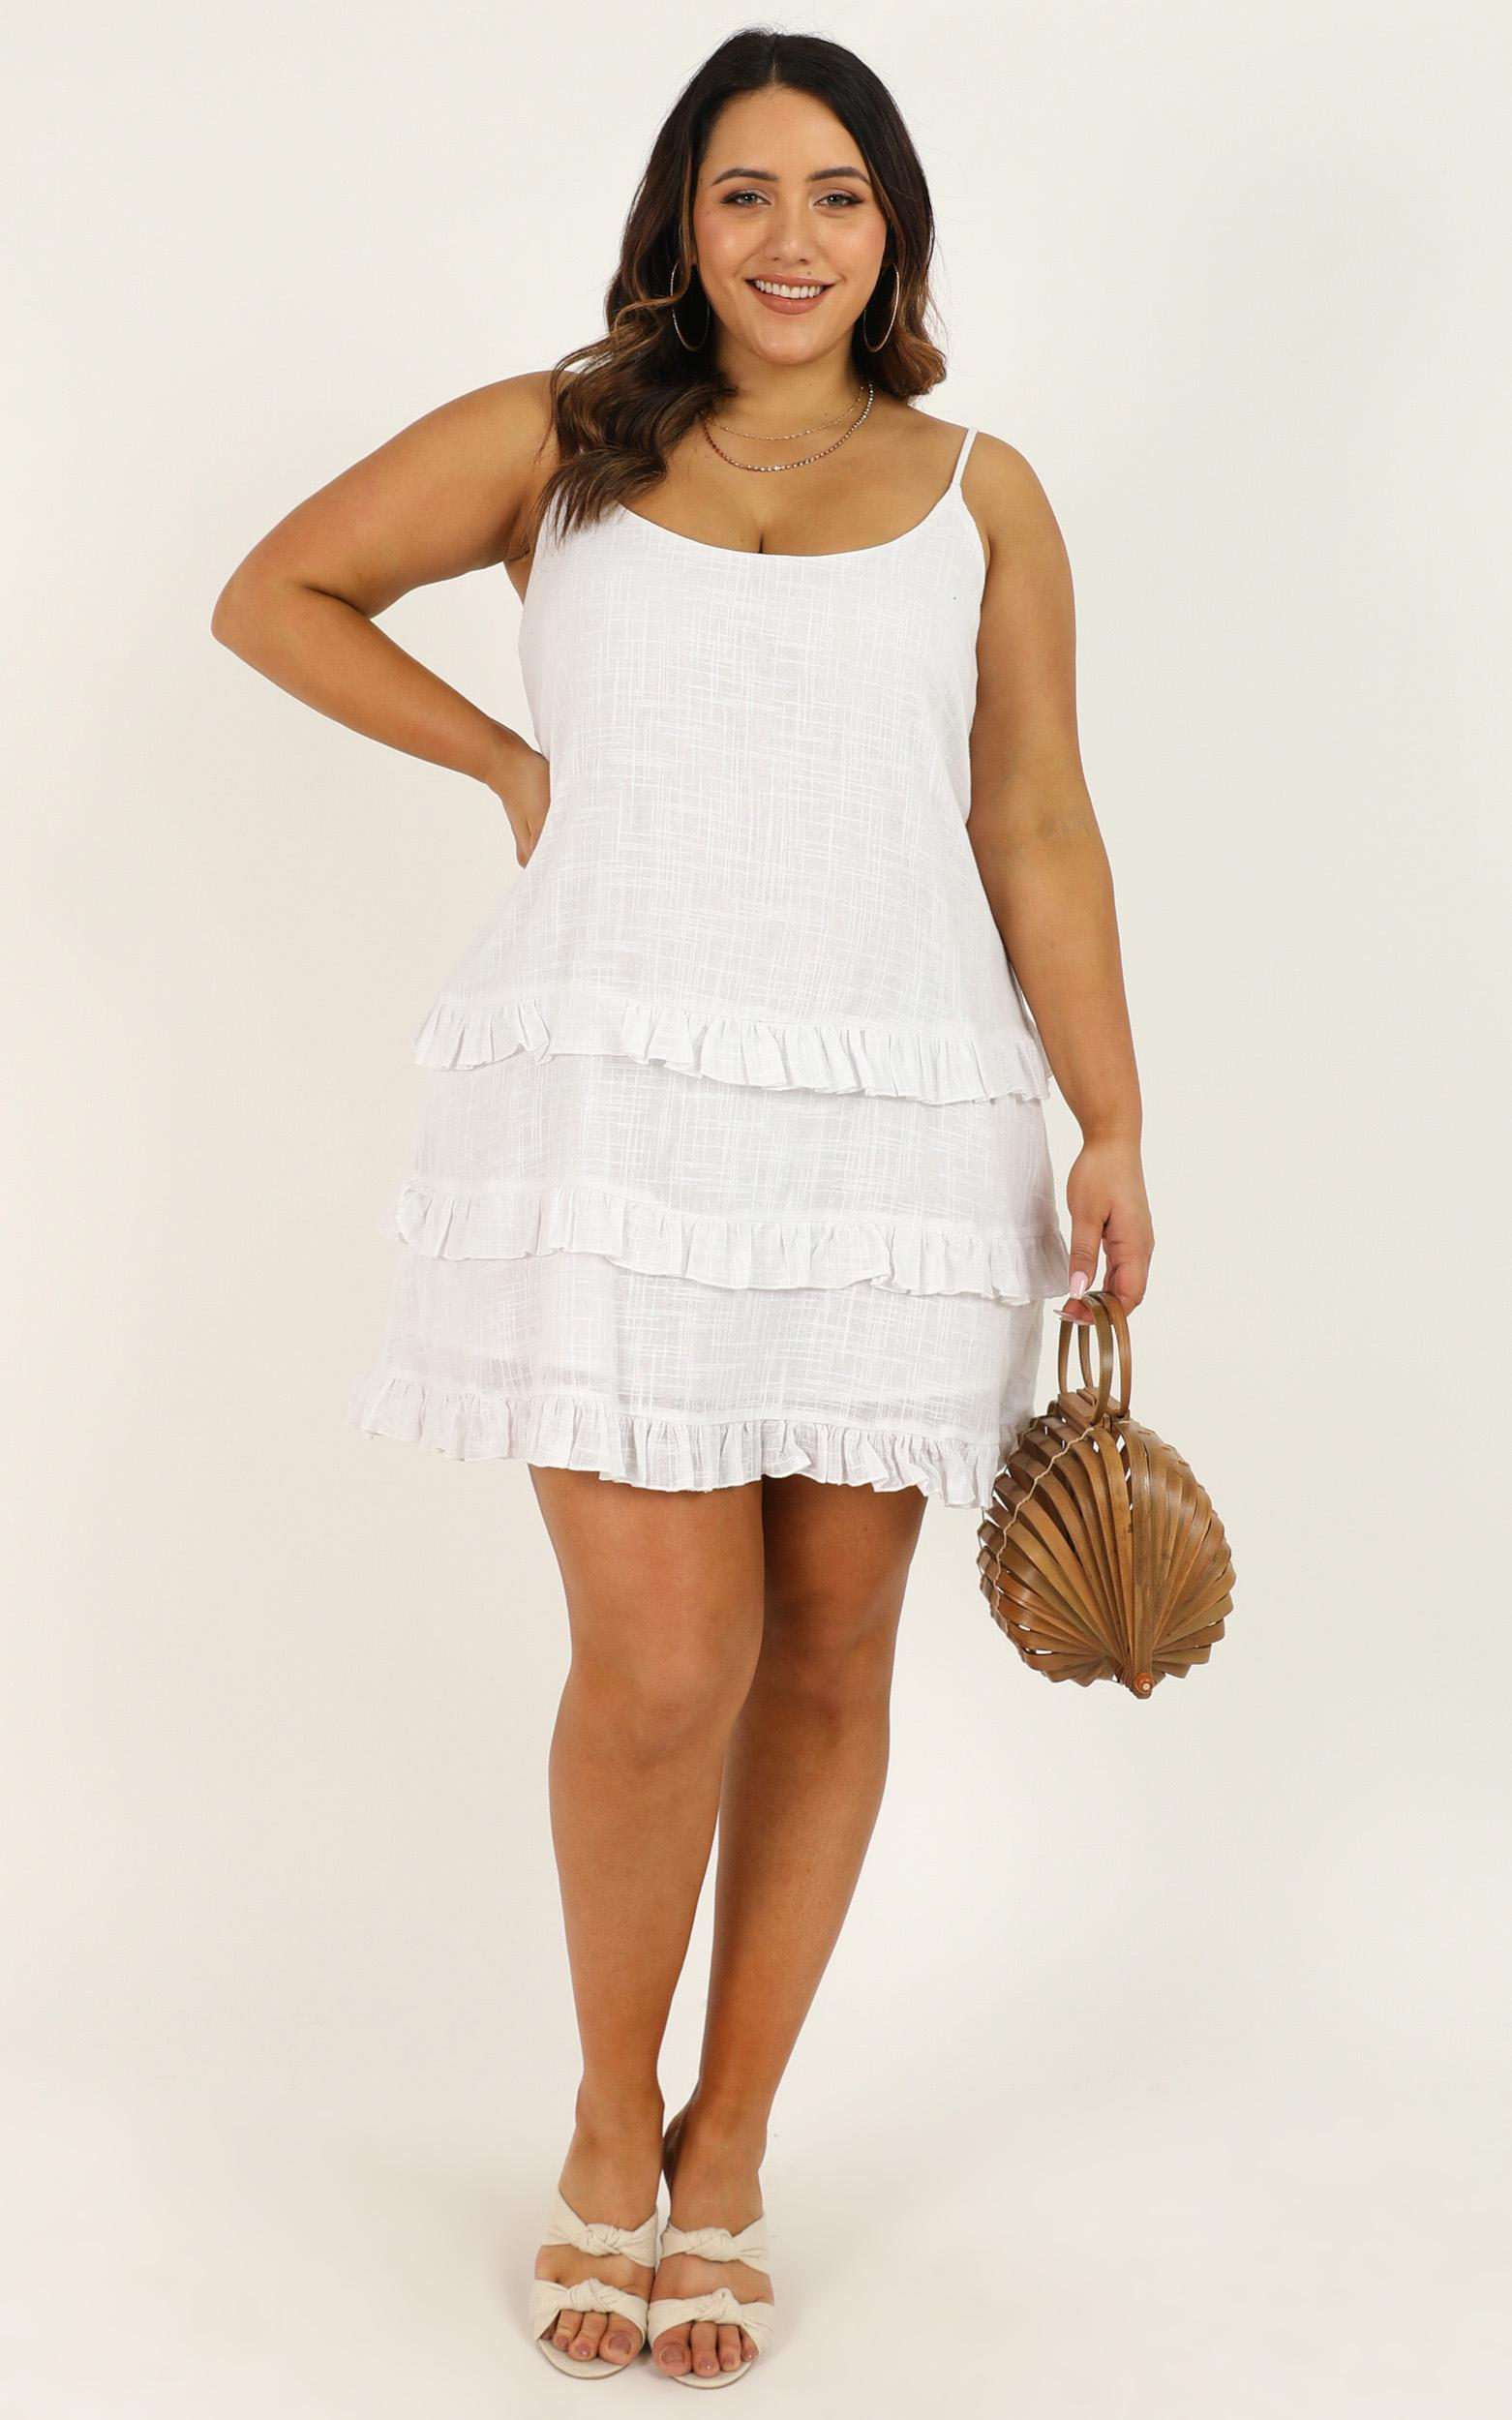 Long reflections Dress in white - 20 (XXXXL), White, hi-res image number null